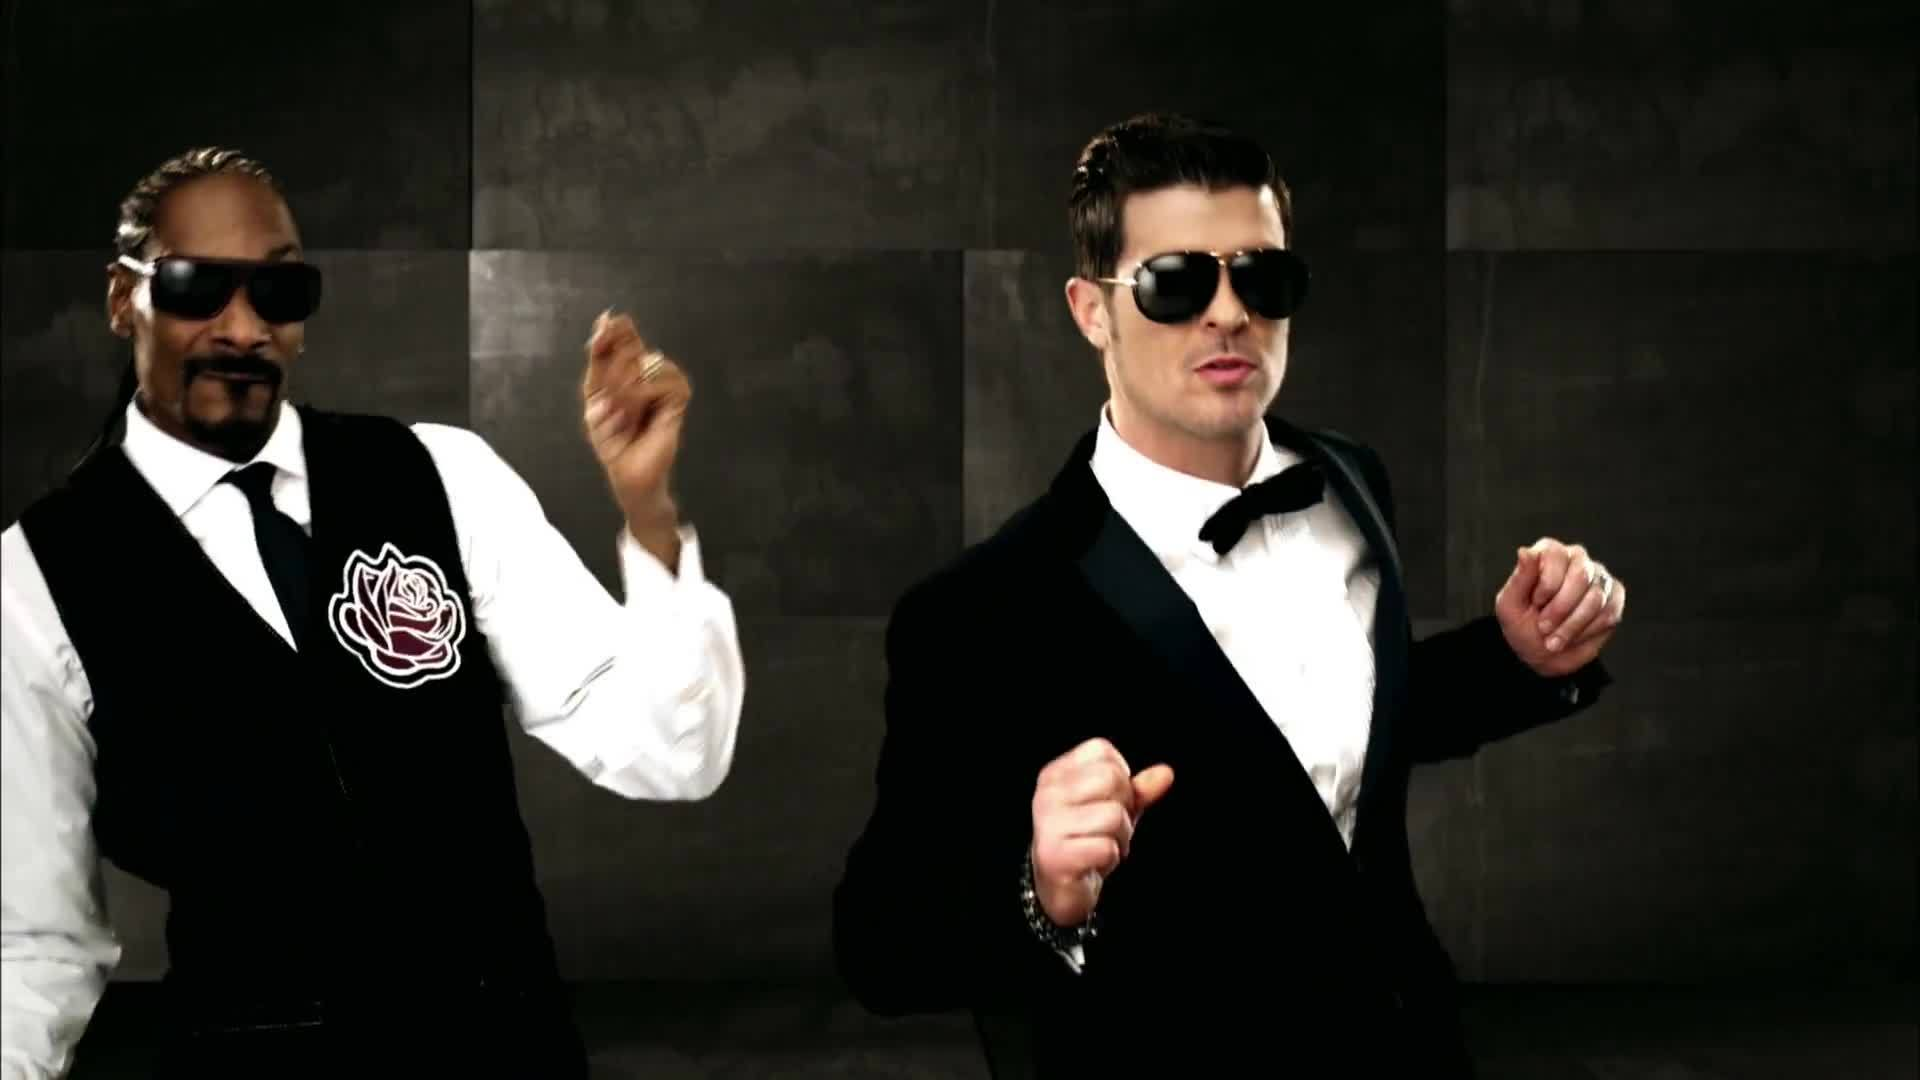 robin, robin thicke, the, thicke, Robin Thicke - It's In The Mornin ft. Snoop Dogg GIFs